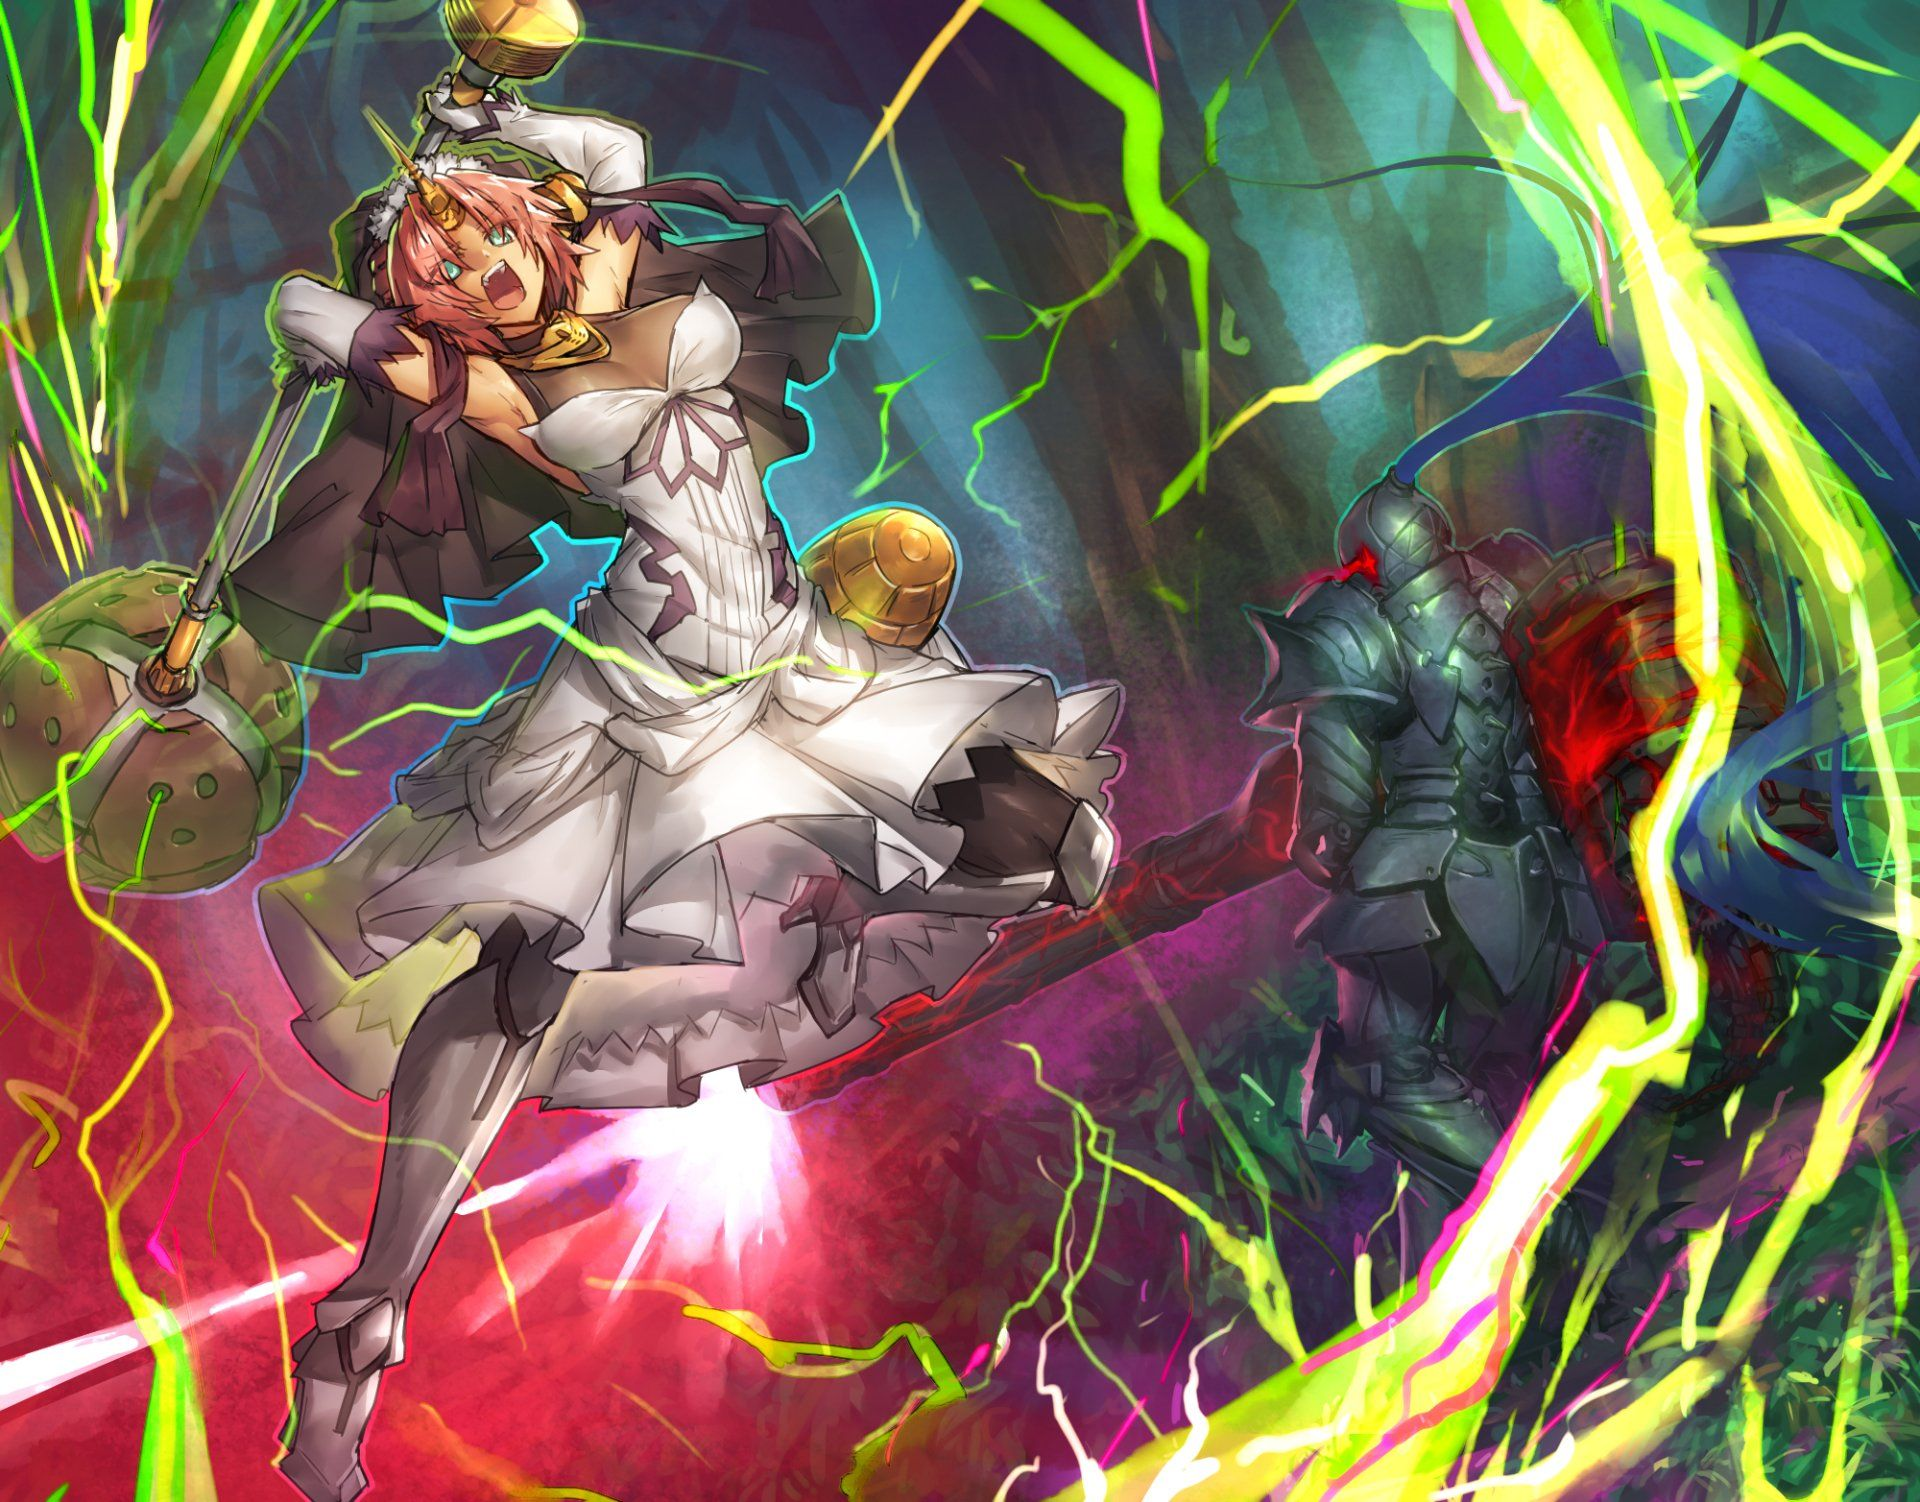 Saber Of Red Fate Grand Order Wallpaper Grand Order Fate Grand Order Saber Fate Grand Order